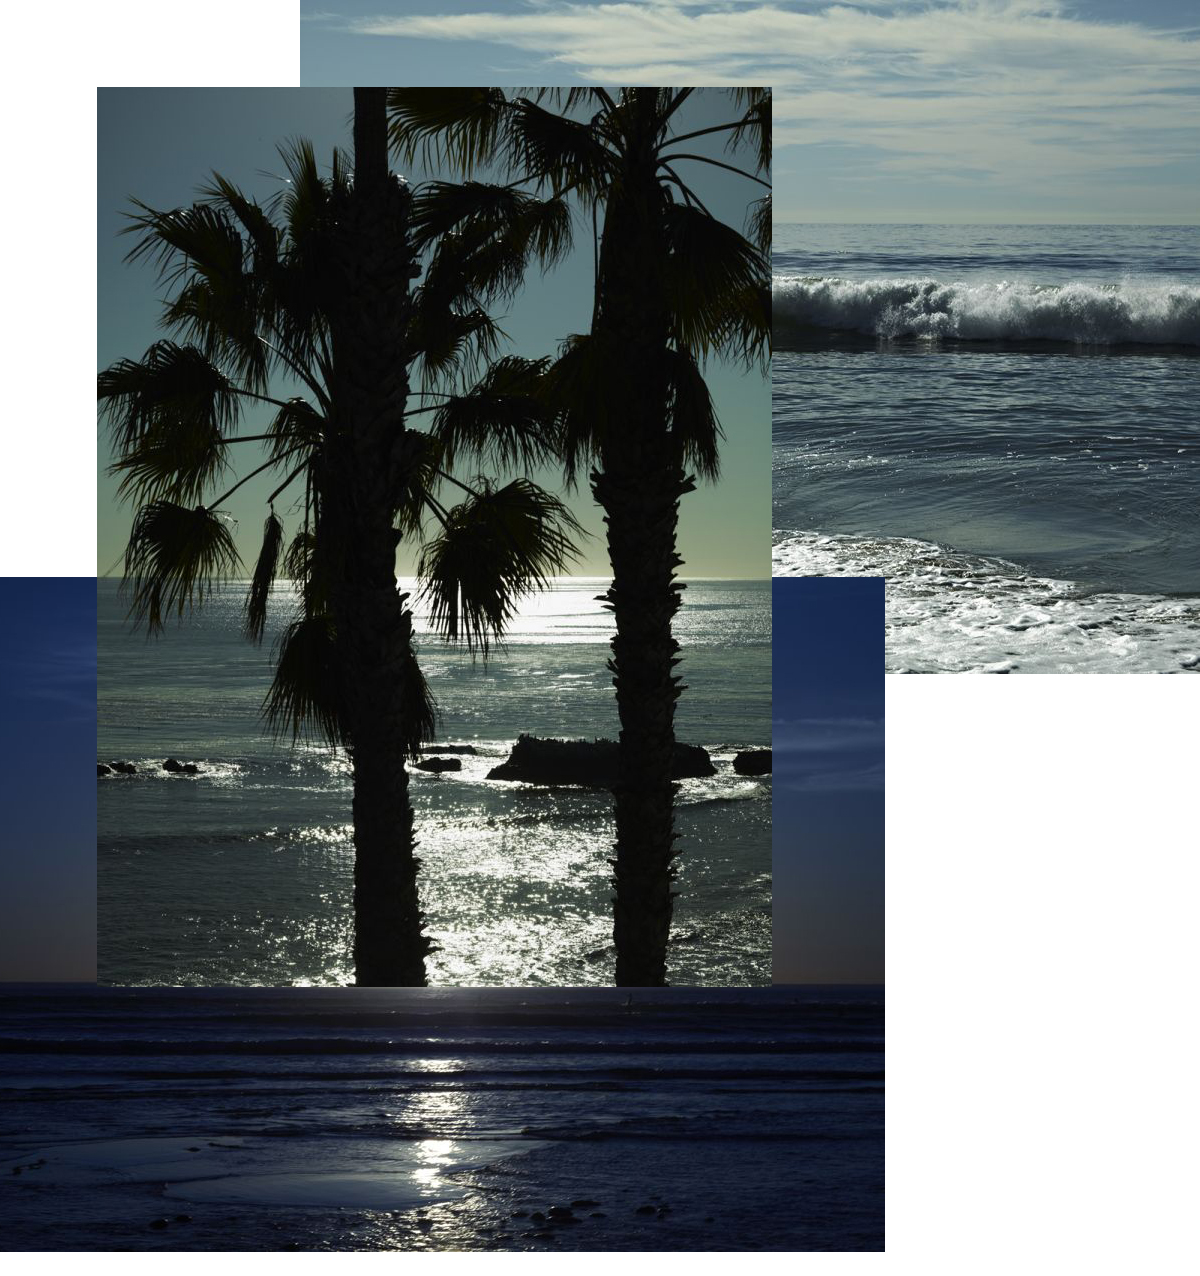 sunset-california-hedislimane